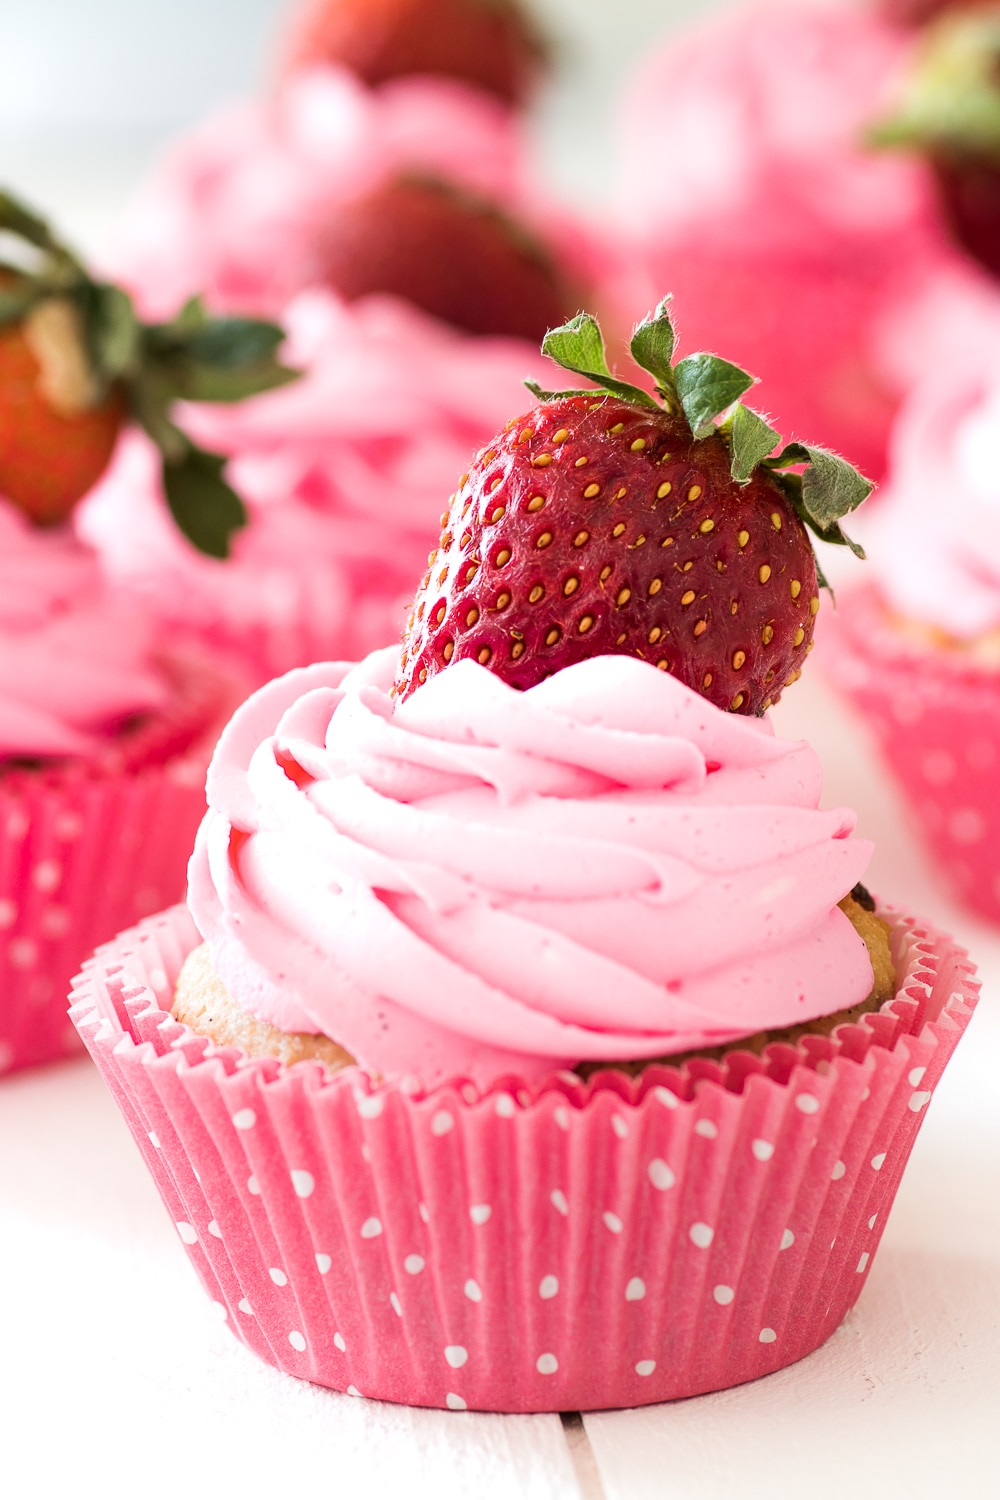 Pink strawberry cupcakes with pink icing and a bright red strawberry on top